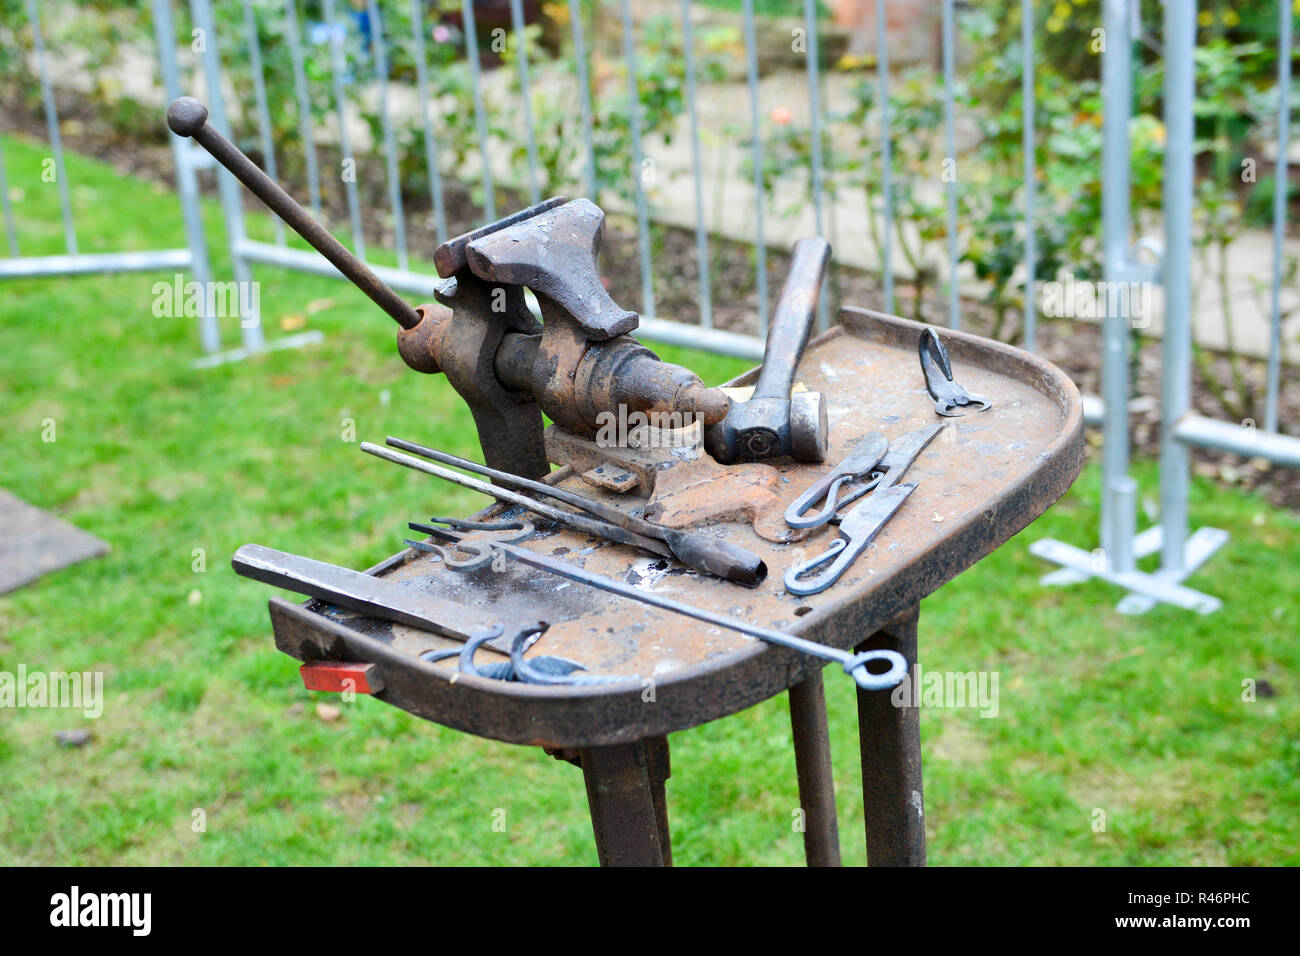 Antique Blacksmith Tools On Small Cast Iron Workbench Stock